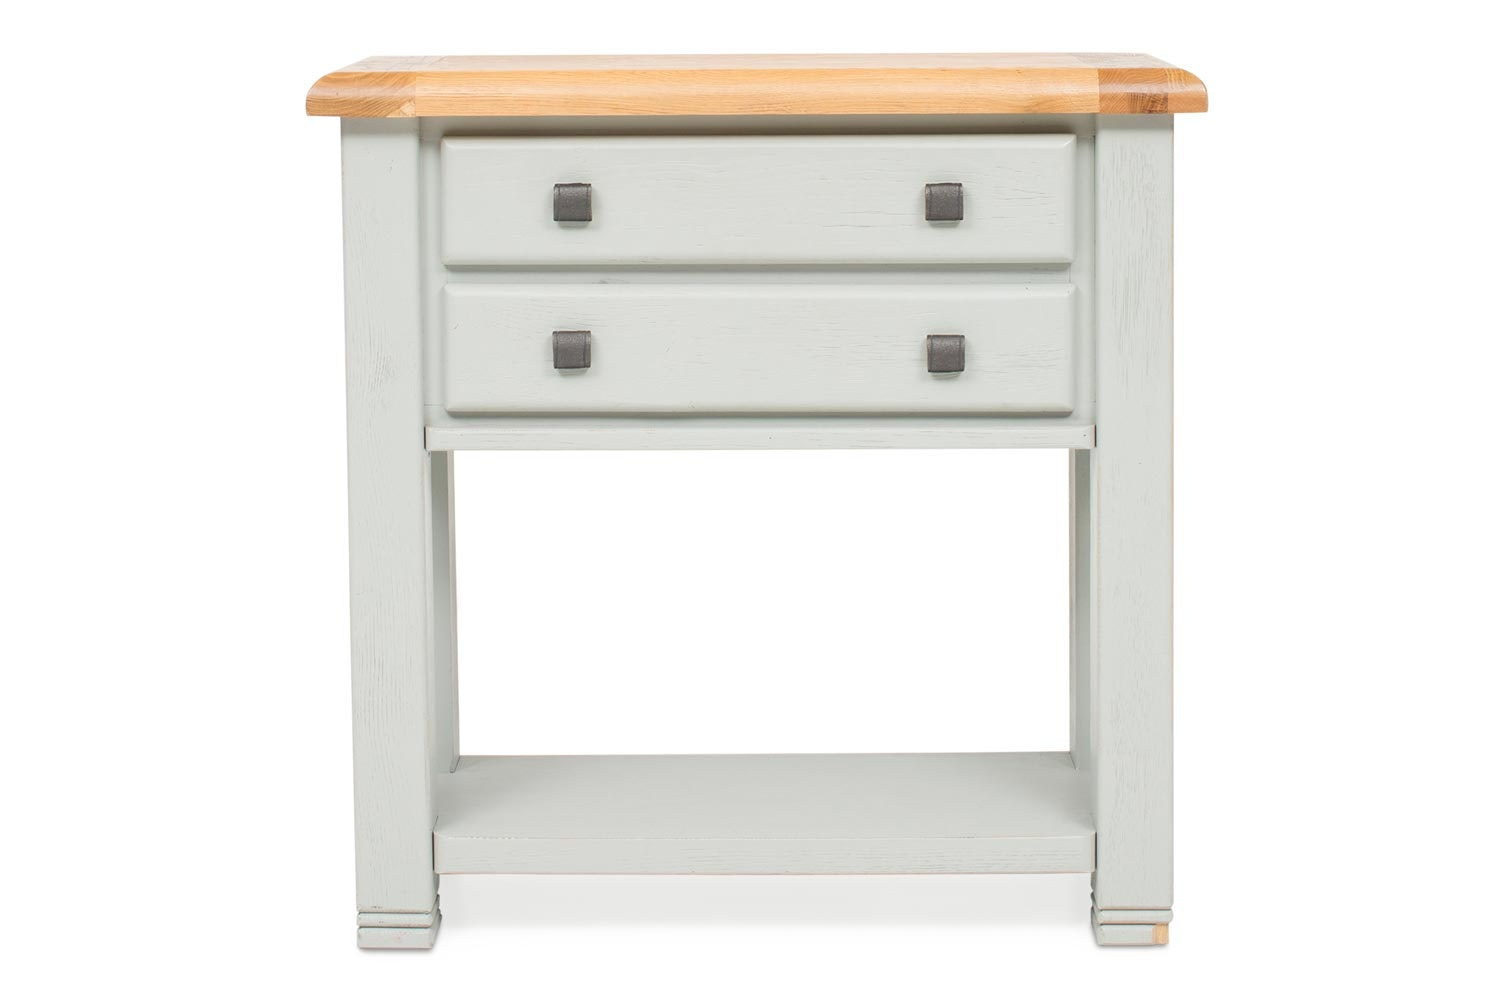 Console Tables Ireland Image collections Coffee Table  : EA1A6235 from geotapseo.com size 1500 x 1000 jpeg 39kB